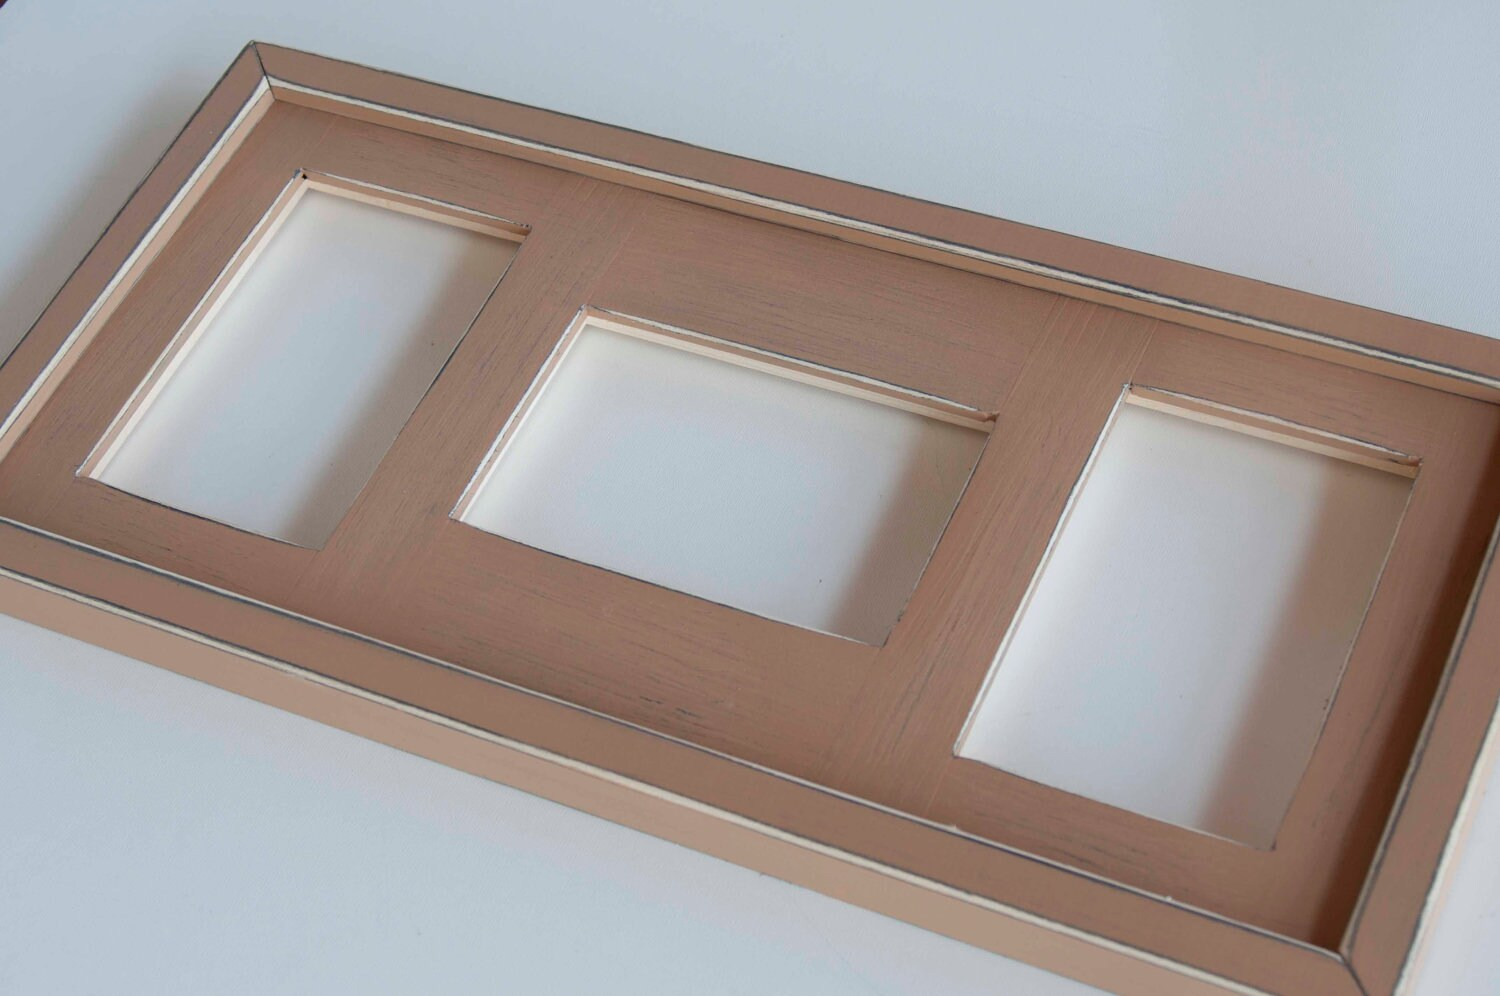 7 Opening Picture Frame 4x6 Canada.Fein Picture Frames With 7 4x6 ...